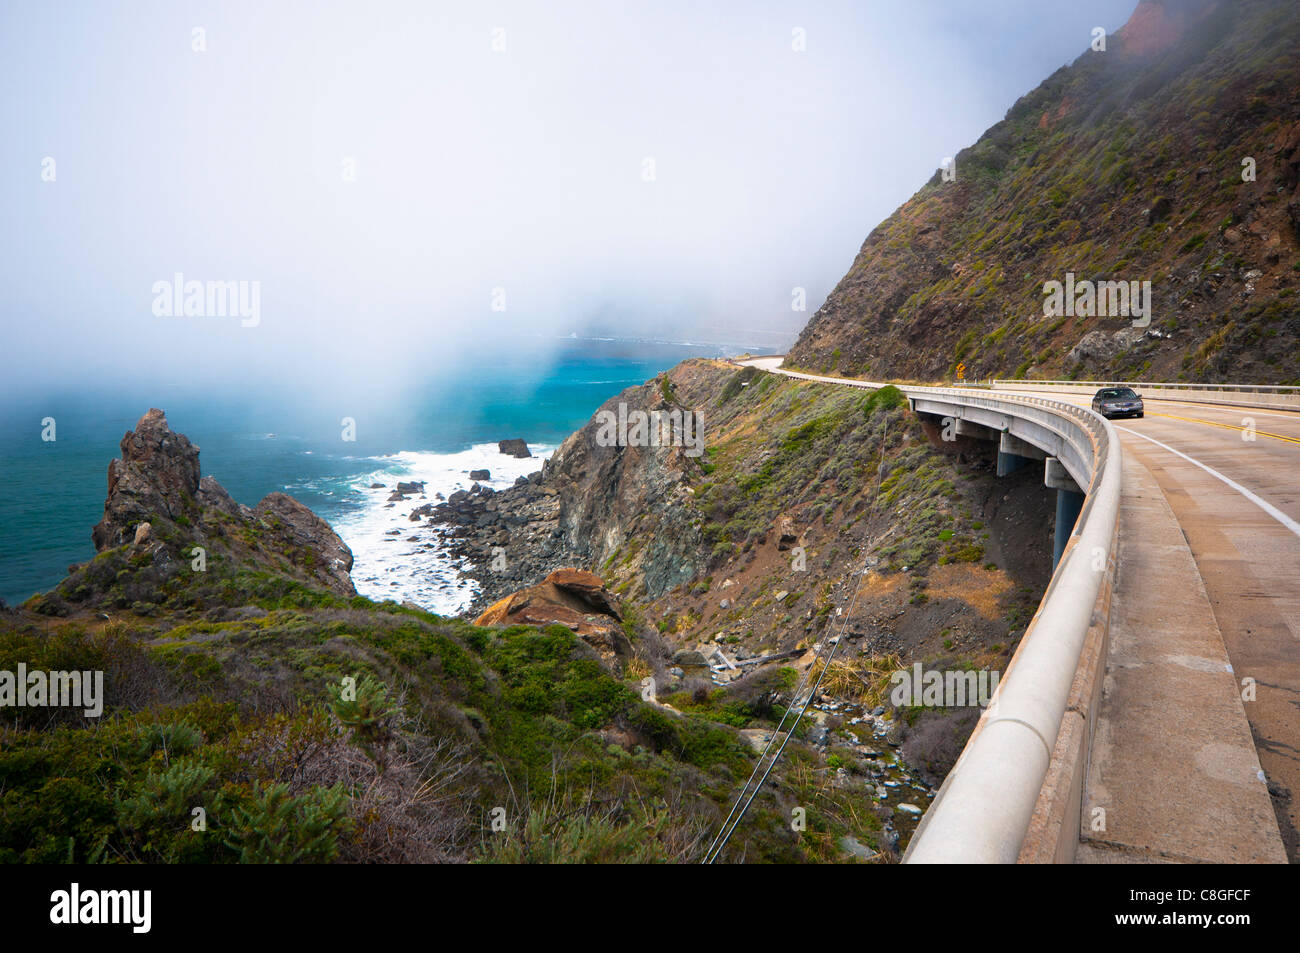 Highway 1, California, United States of America - Stock Image